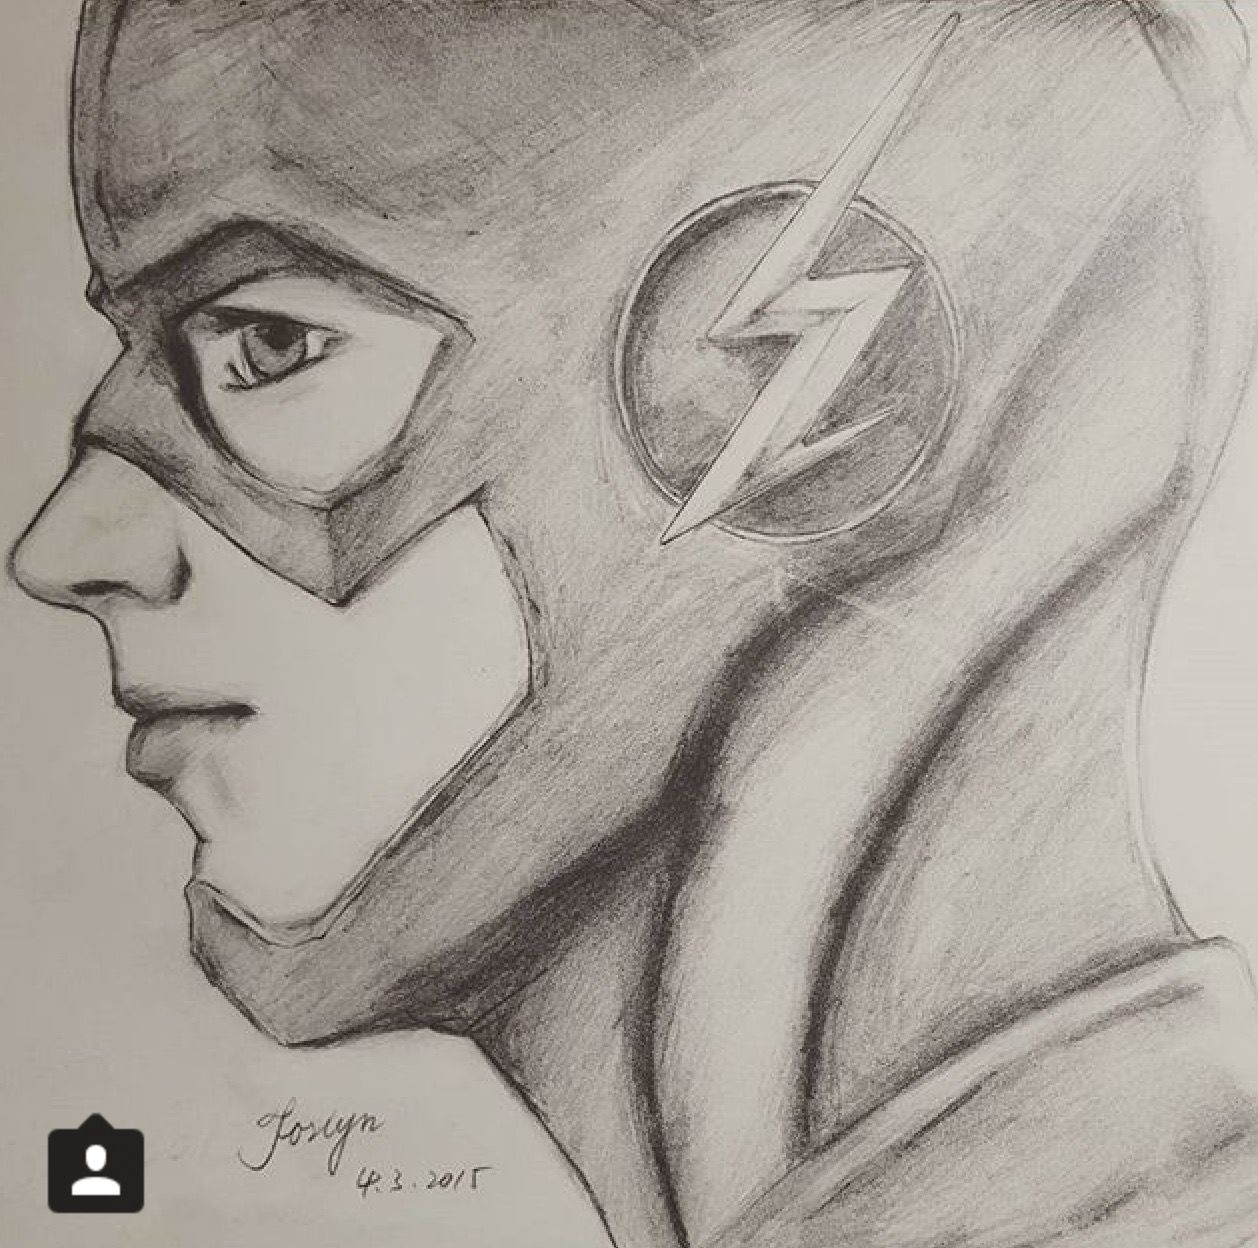 Barry Allen AKA The Flash Credit To Whoever Drew This